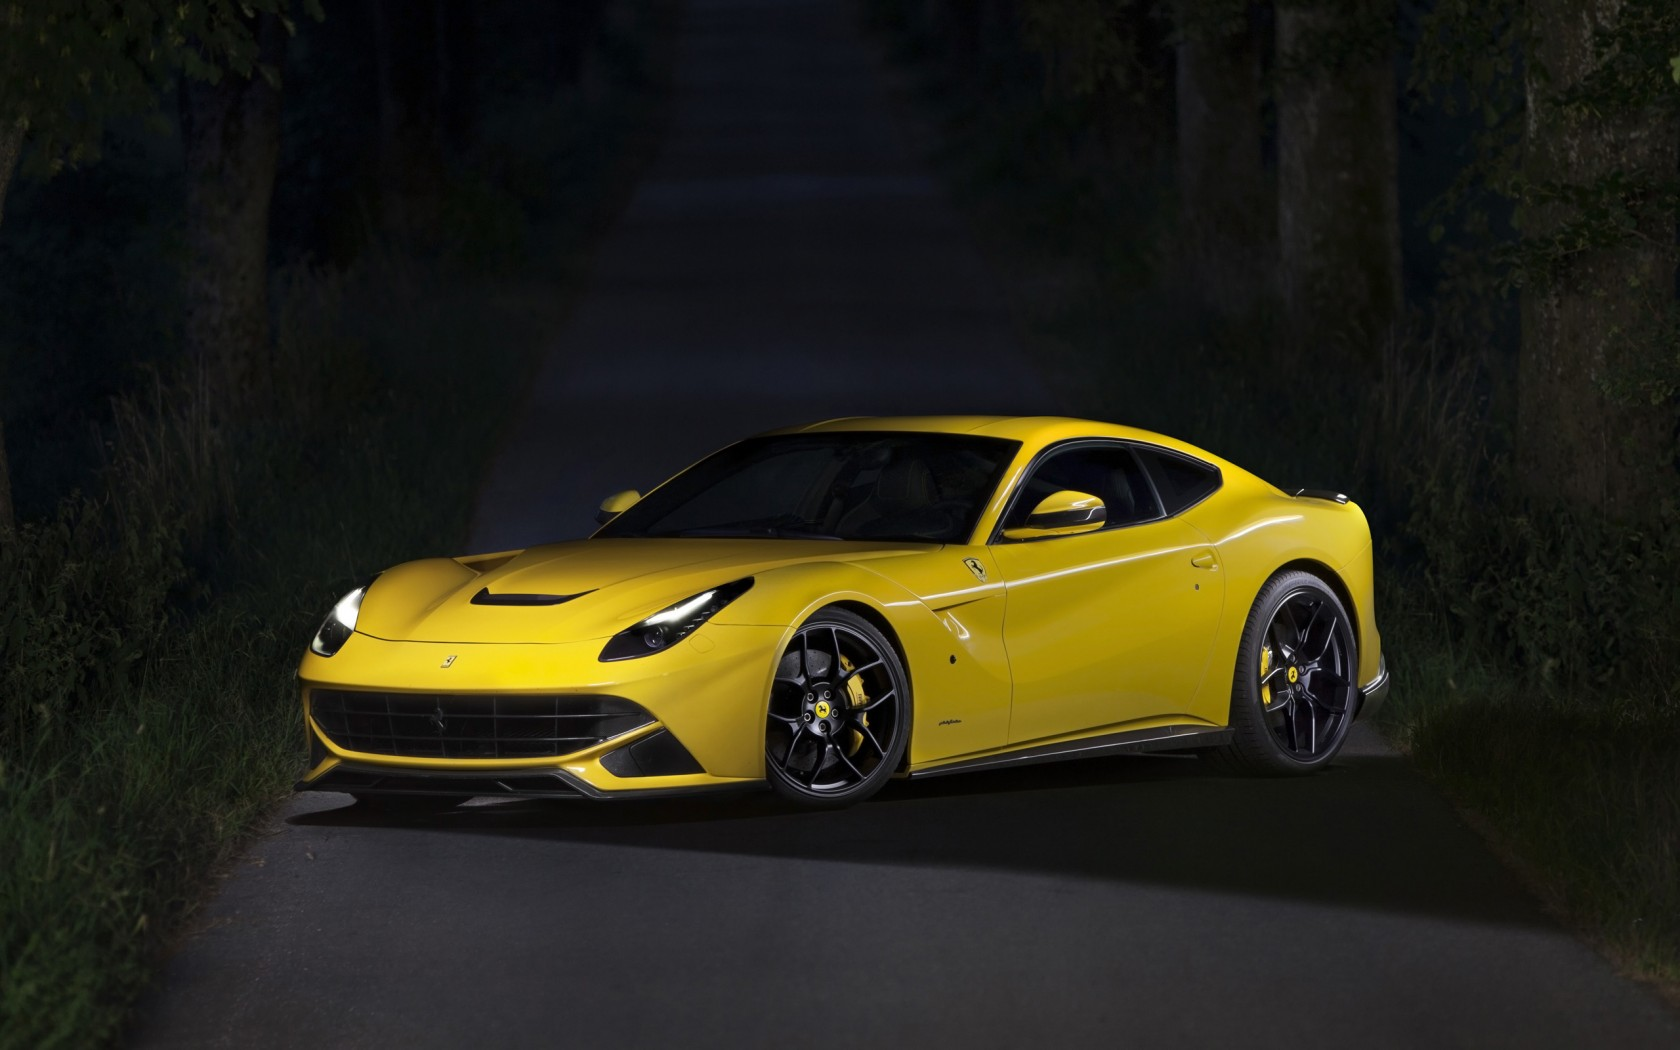 Novitec Rosso Ferrari F12berlinetta Wallpaper Hd Car